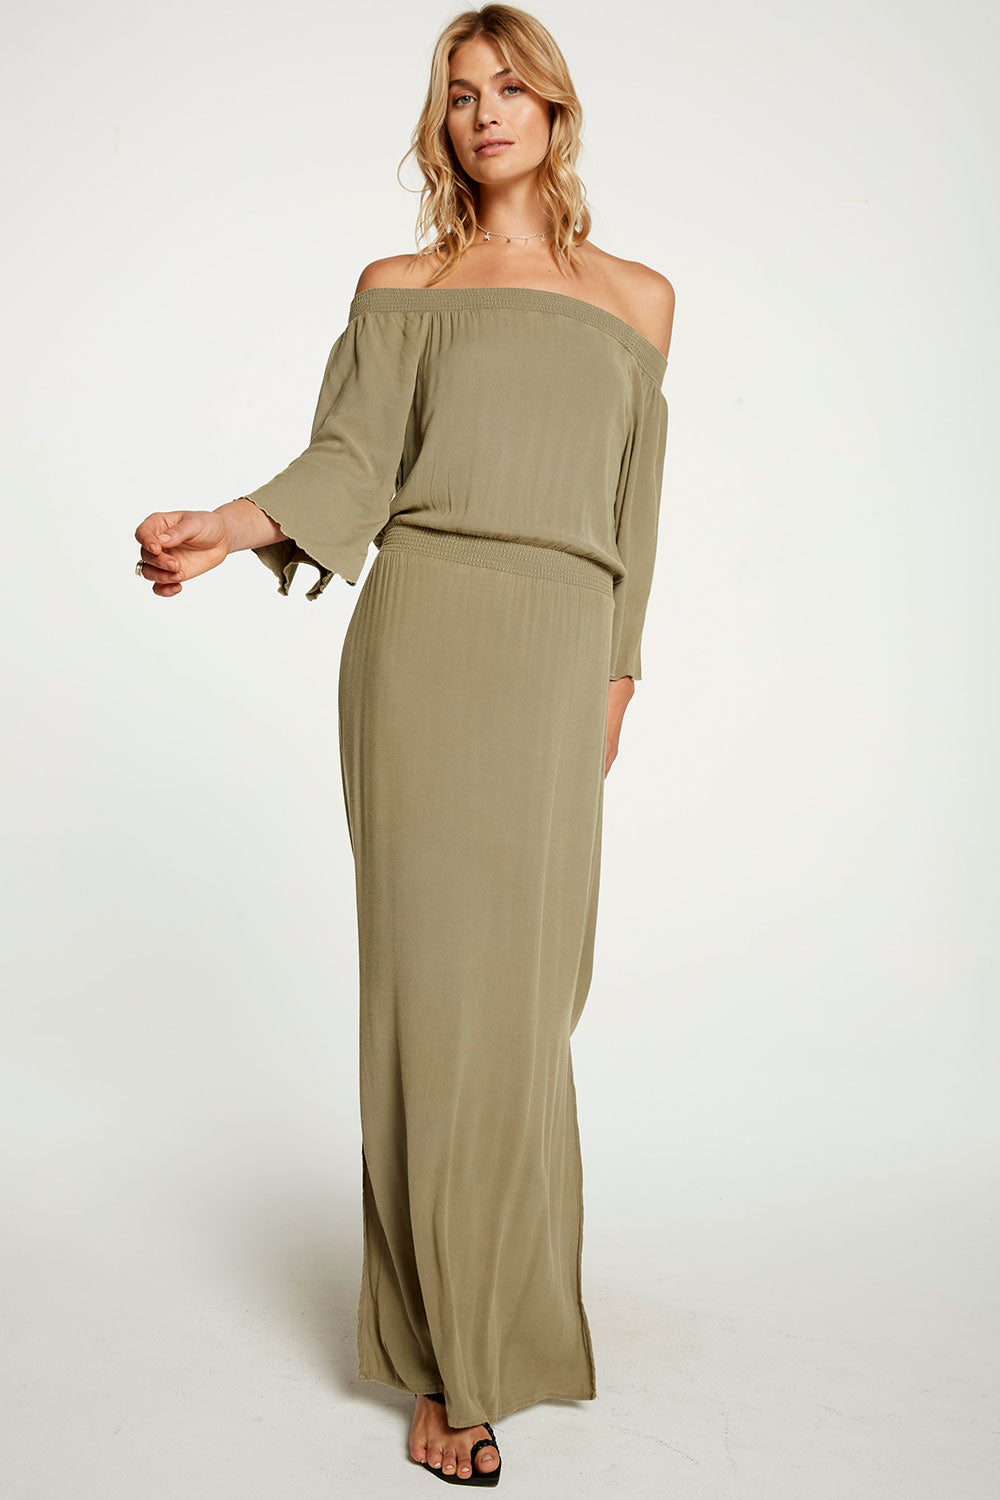 Heirloom Wovens Off Shoulder Angel Sleeve Slit Maxi Dress